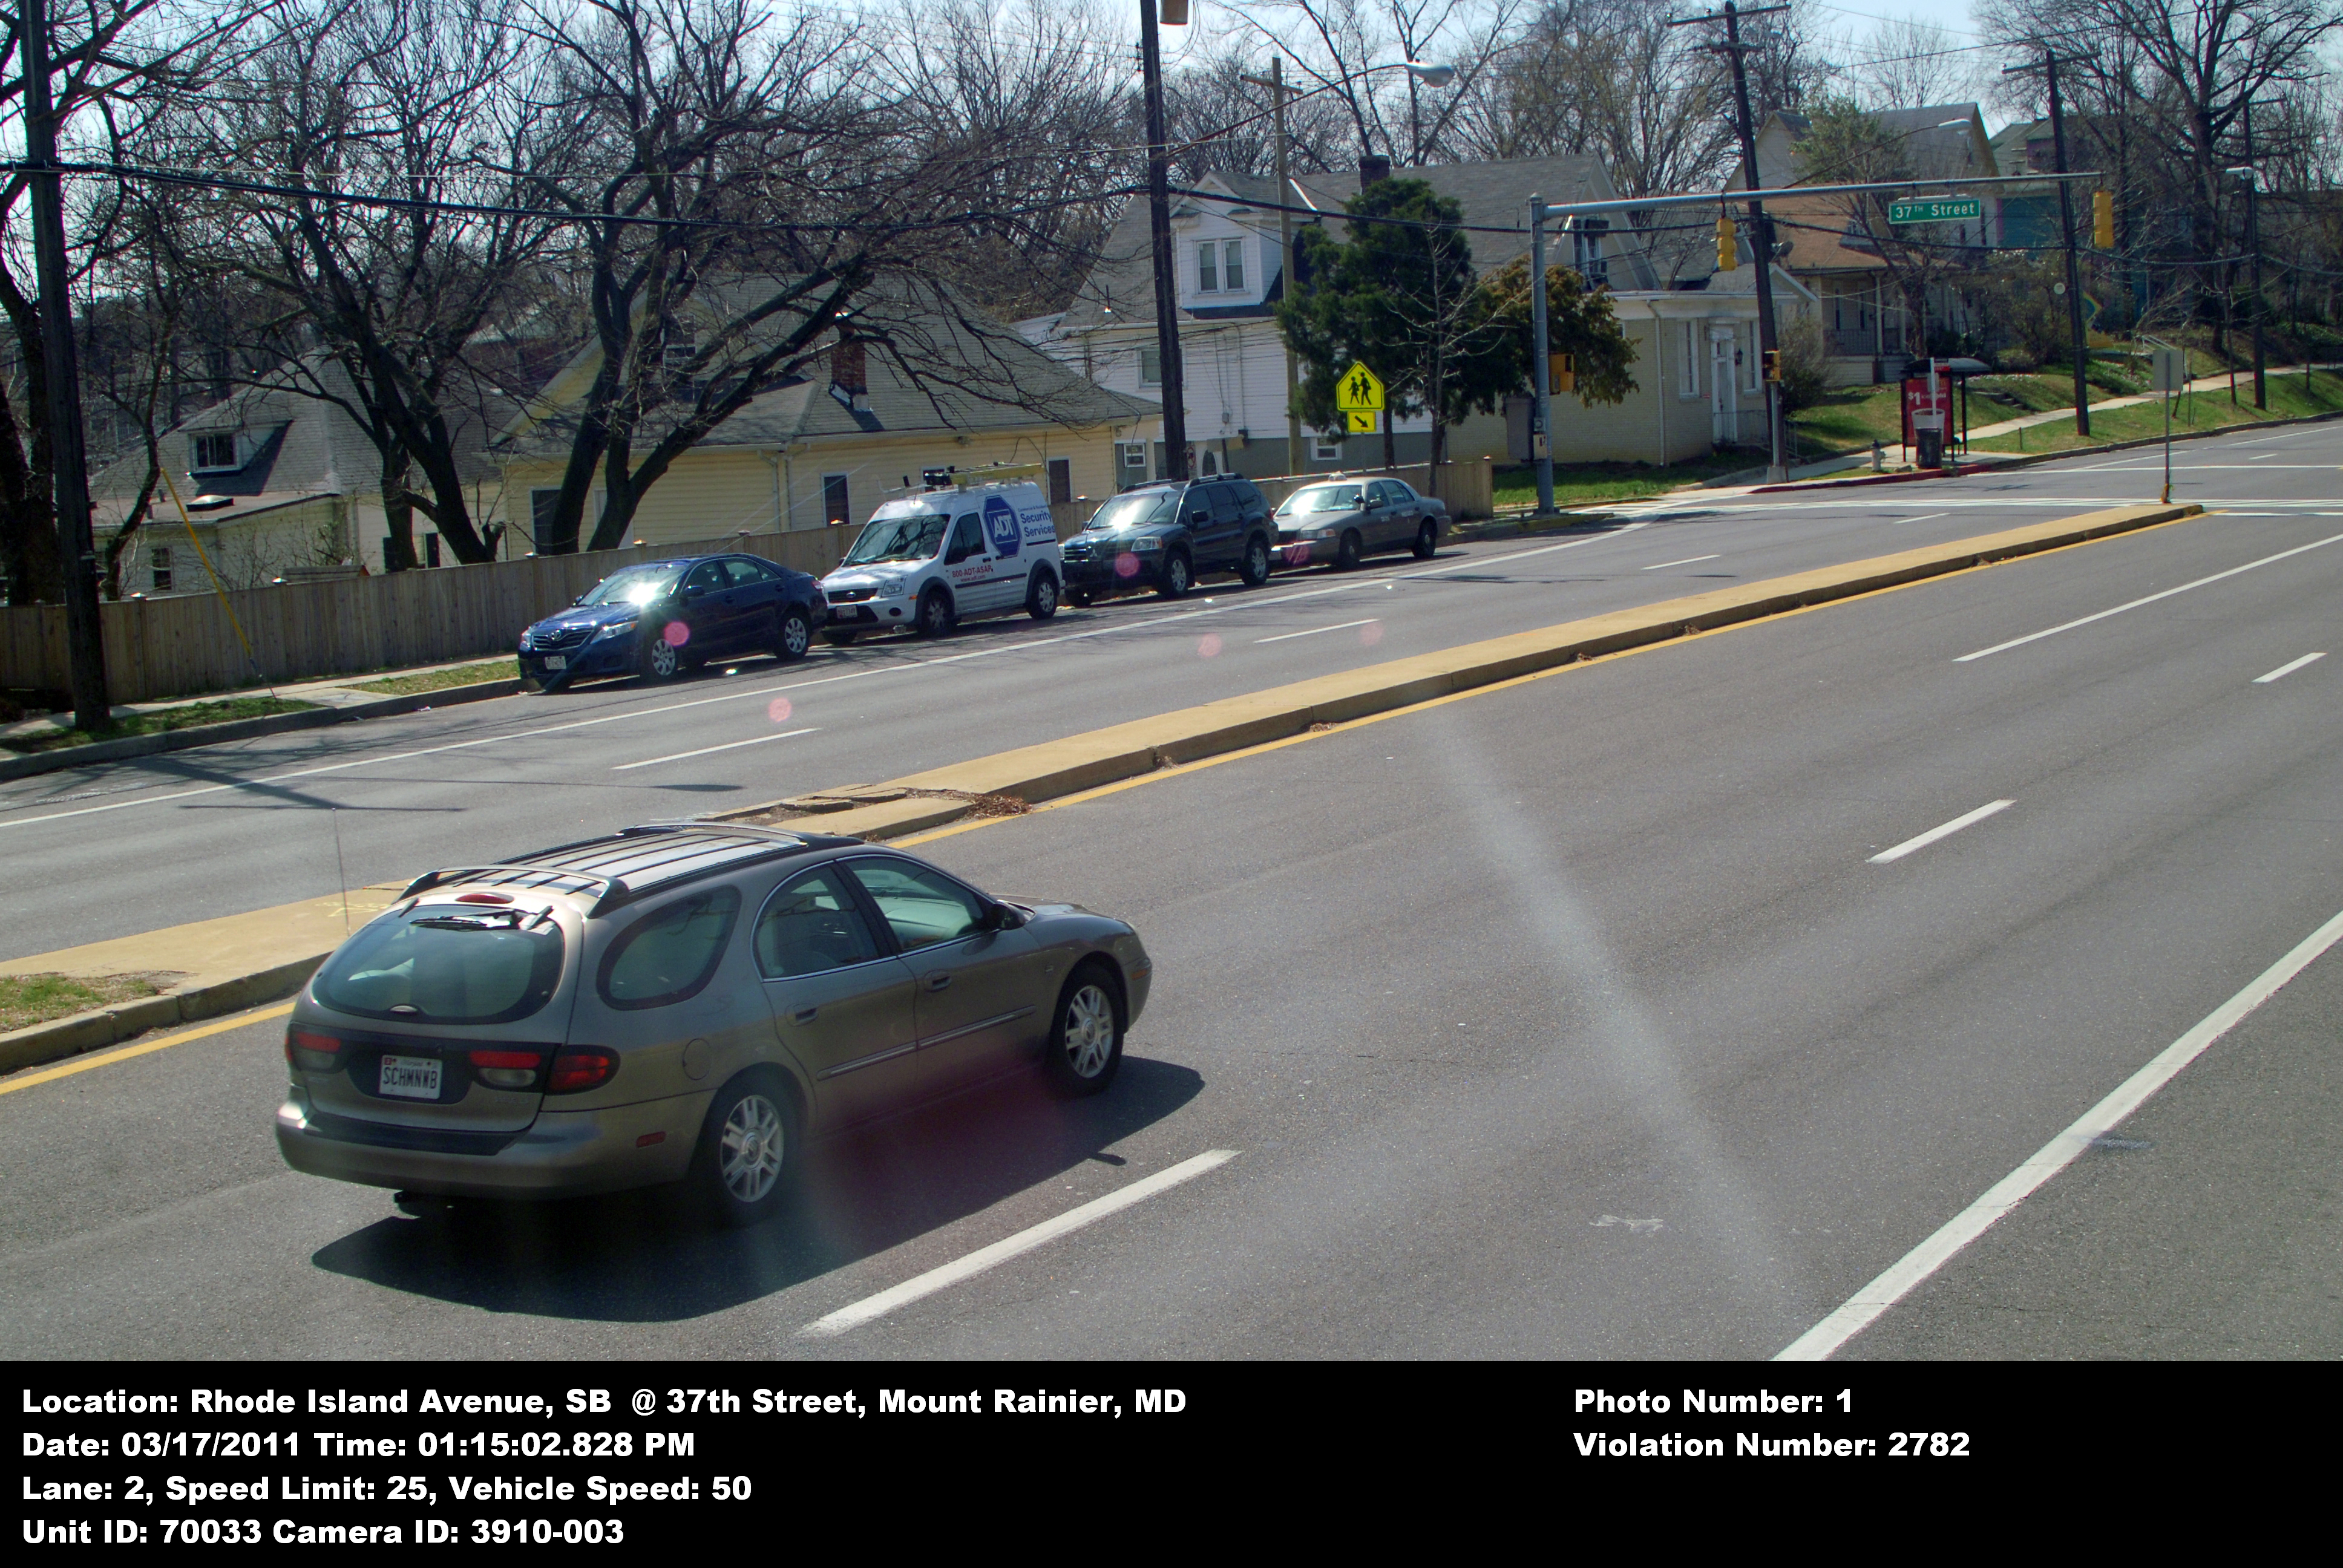 File:Speed camera in Mount Rainier, Maryland demonstrating speed ...